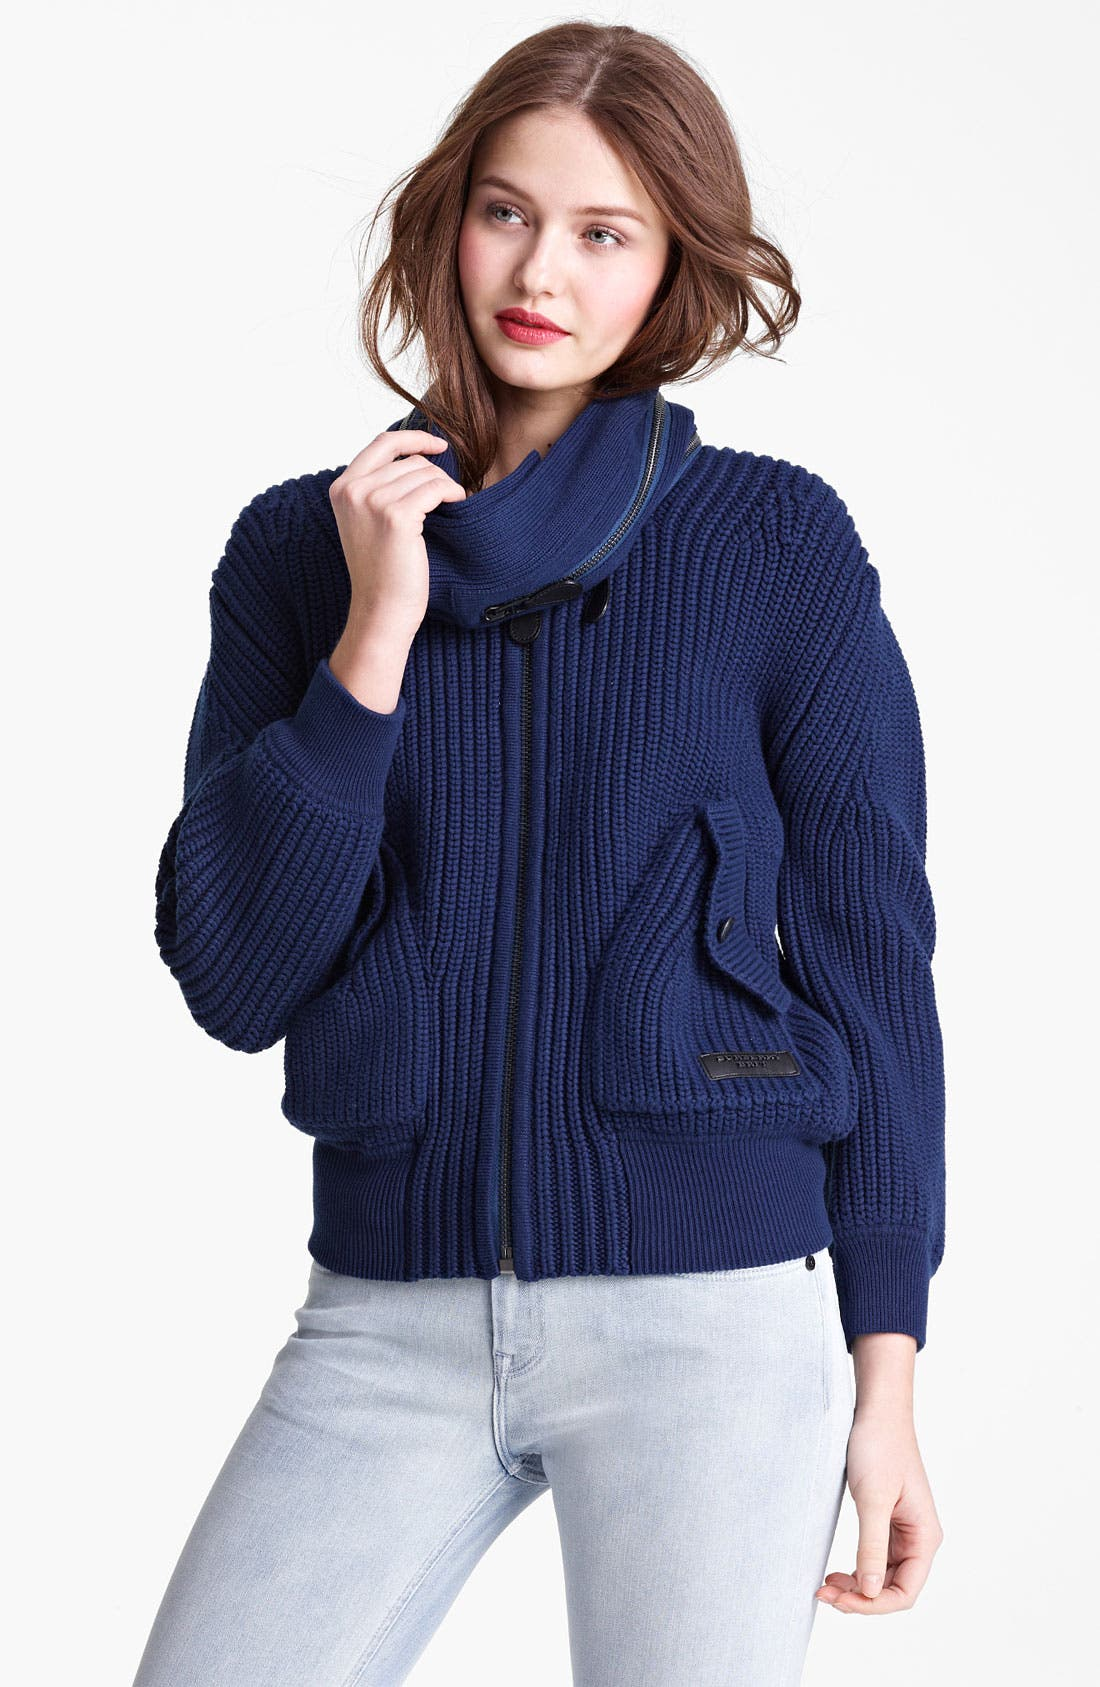 Alternate Image 1 Selected - Burberry Brit Knit Cardigan